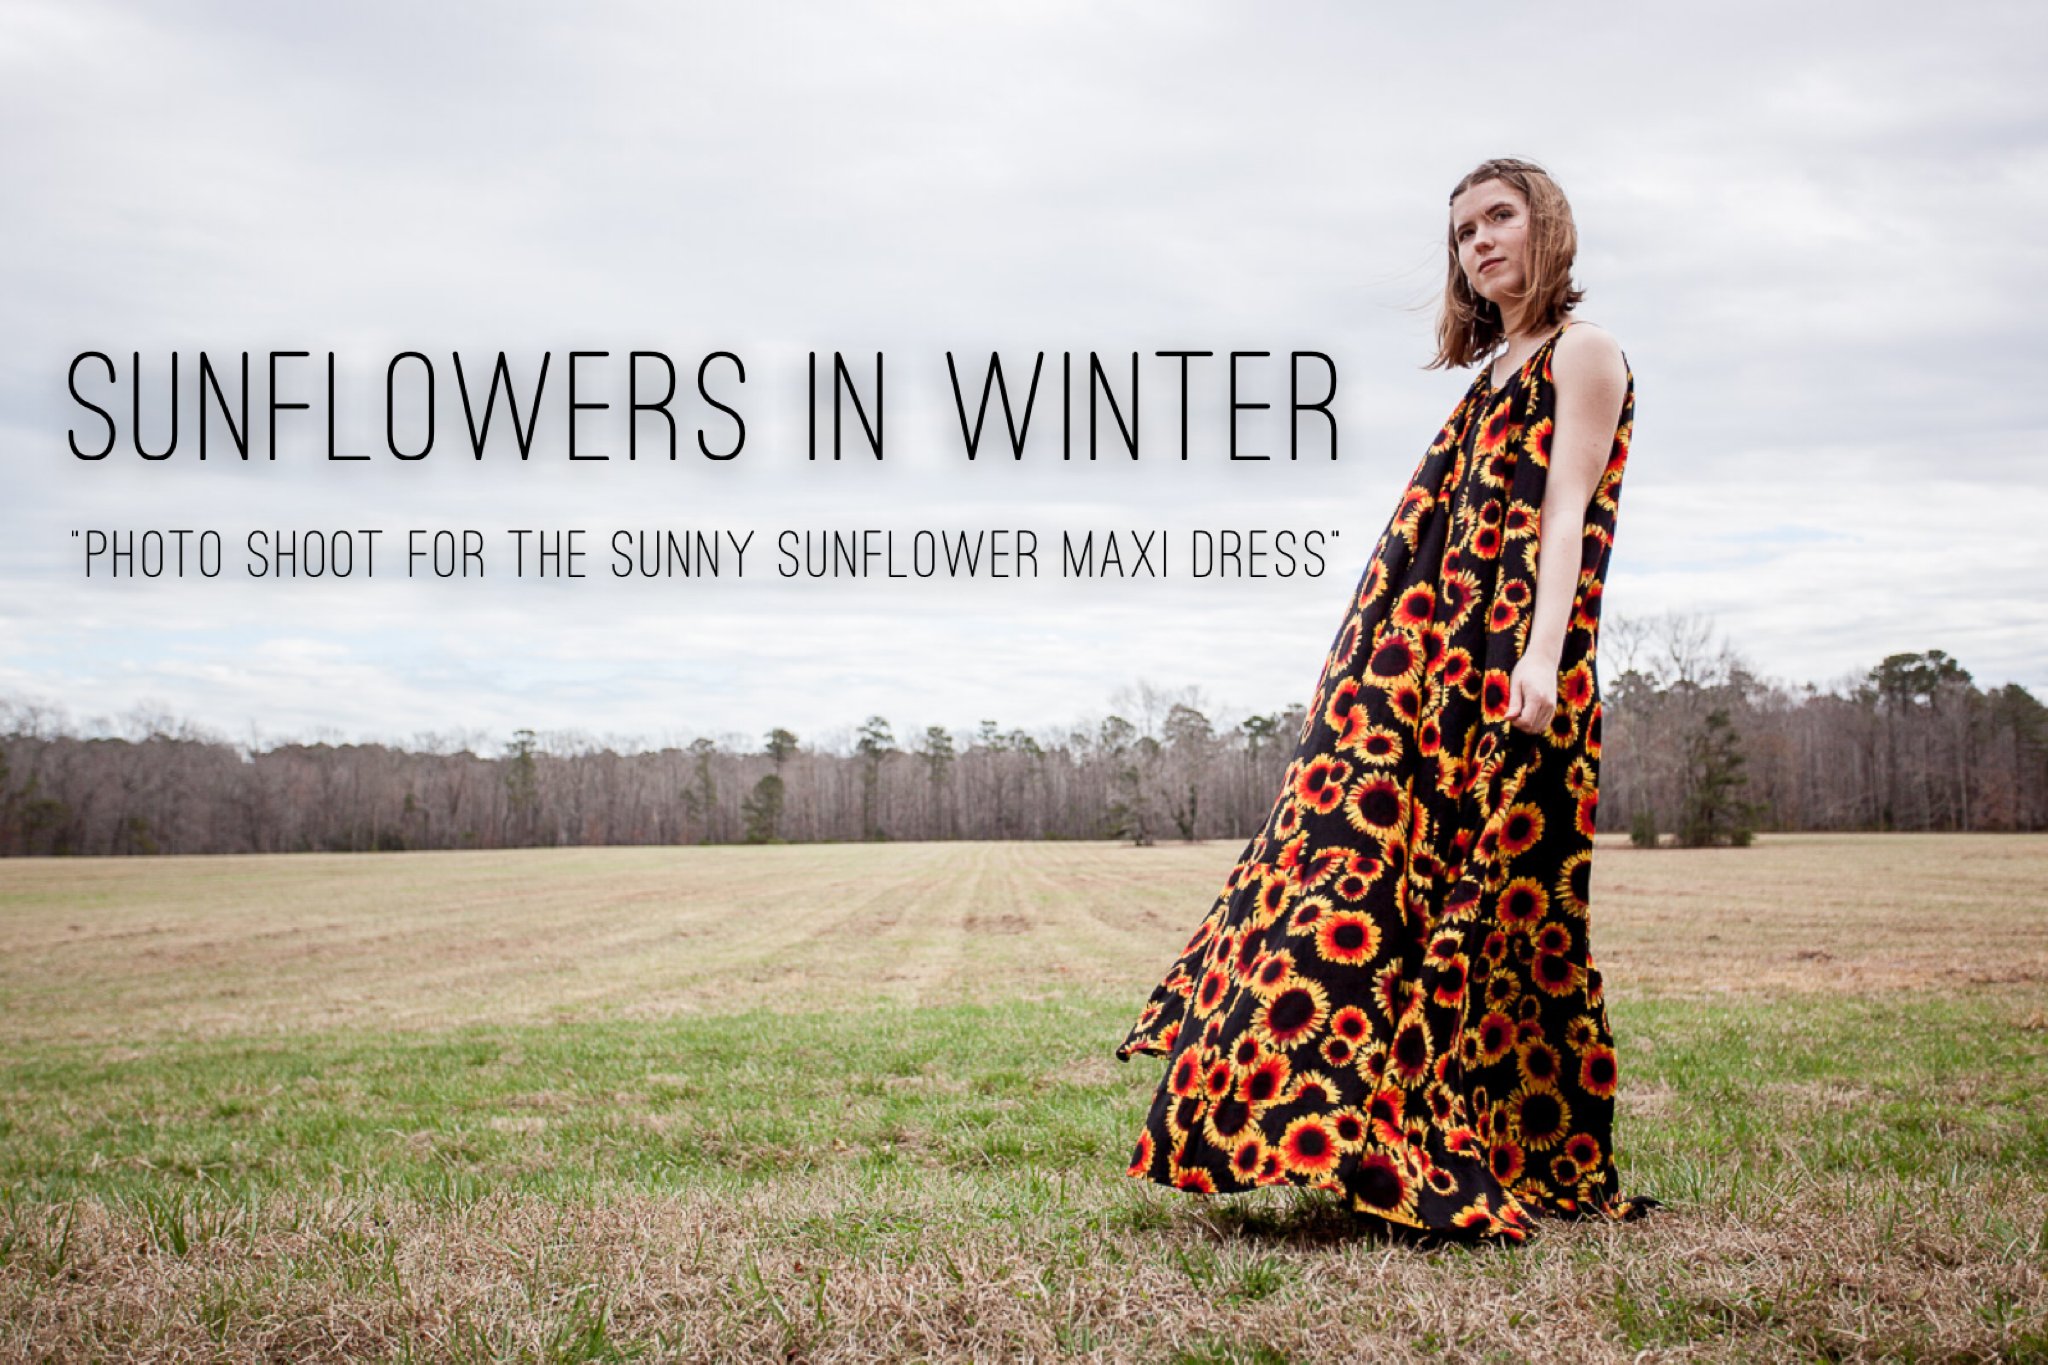 SUNFLOWERS IN WINTER-the photoshoot for the Sunny Sunflowers Maxi Dress @gossamerydreams.com